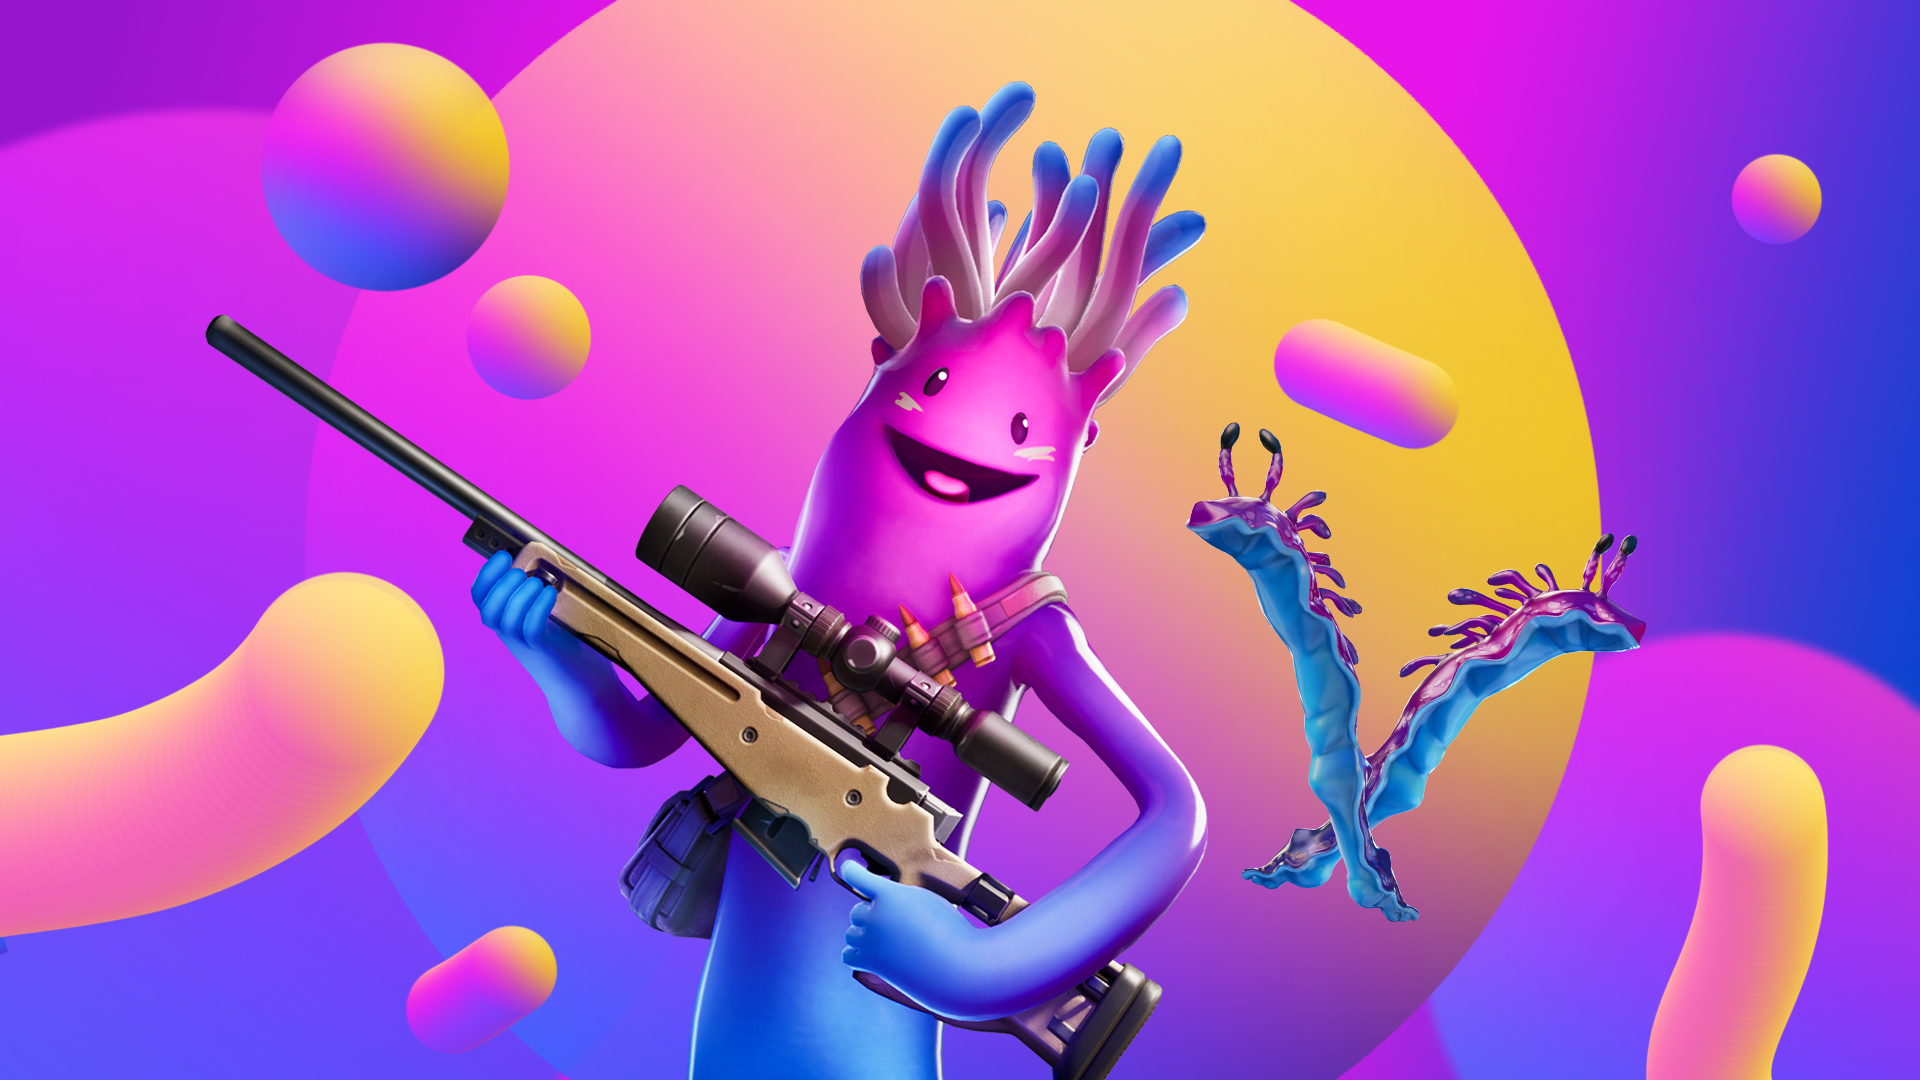 New Fortnite Skin Is Out All About Jellie Hd Wallpapers Supertab Themes